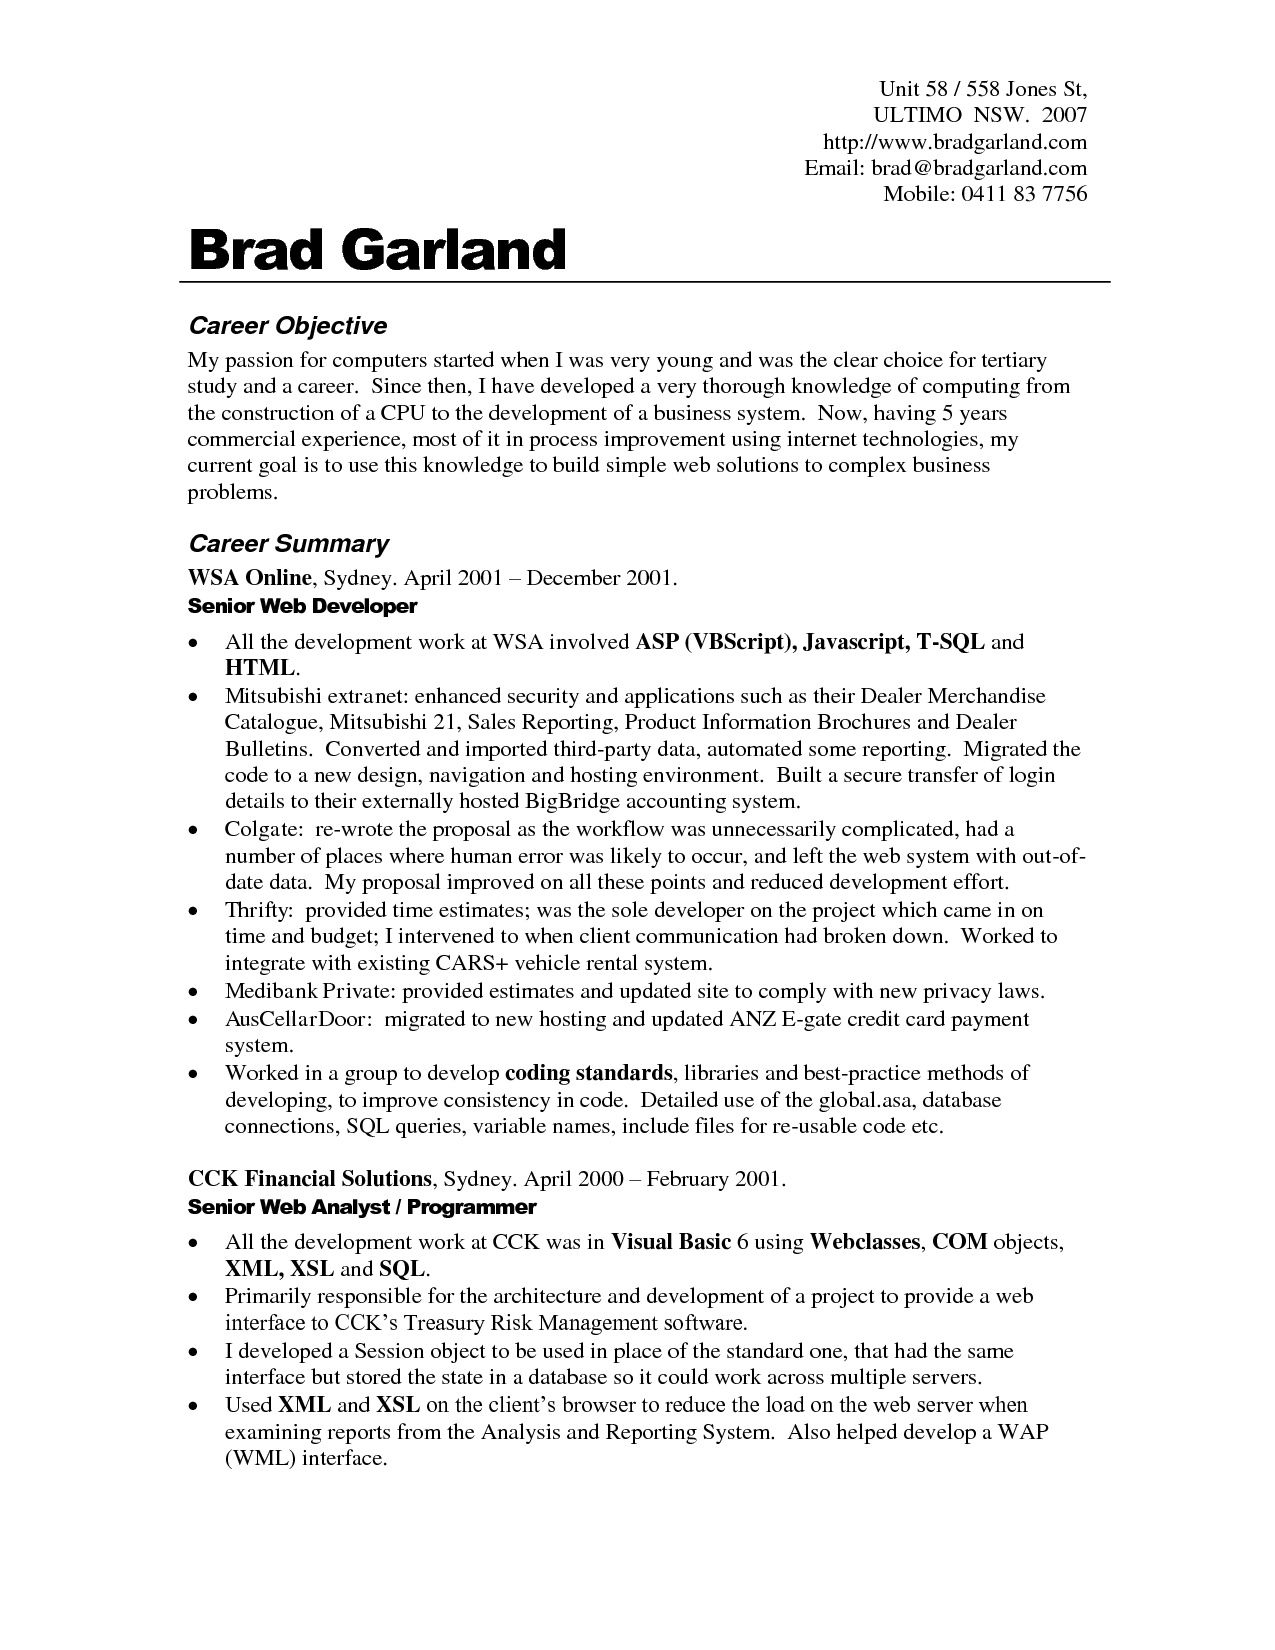 Best Objective For Resume Best Career Objective Resume Examples For Example Your Training Goals And